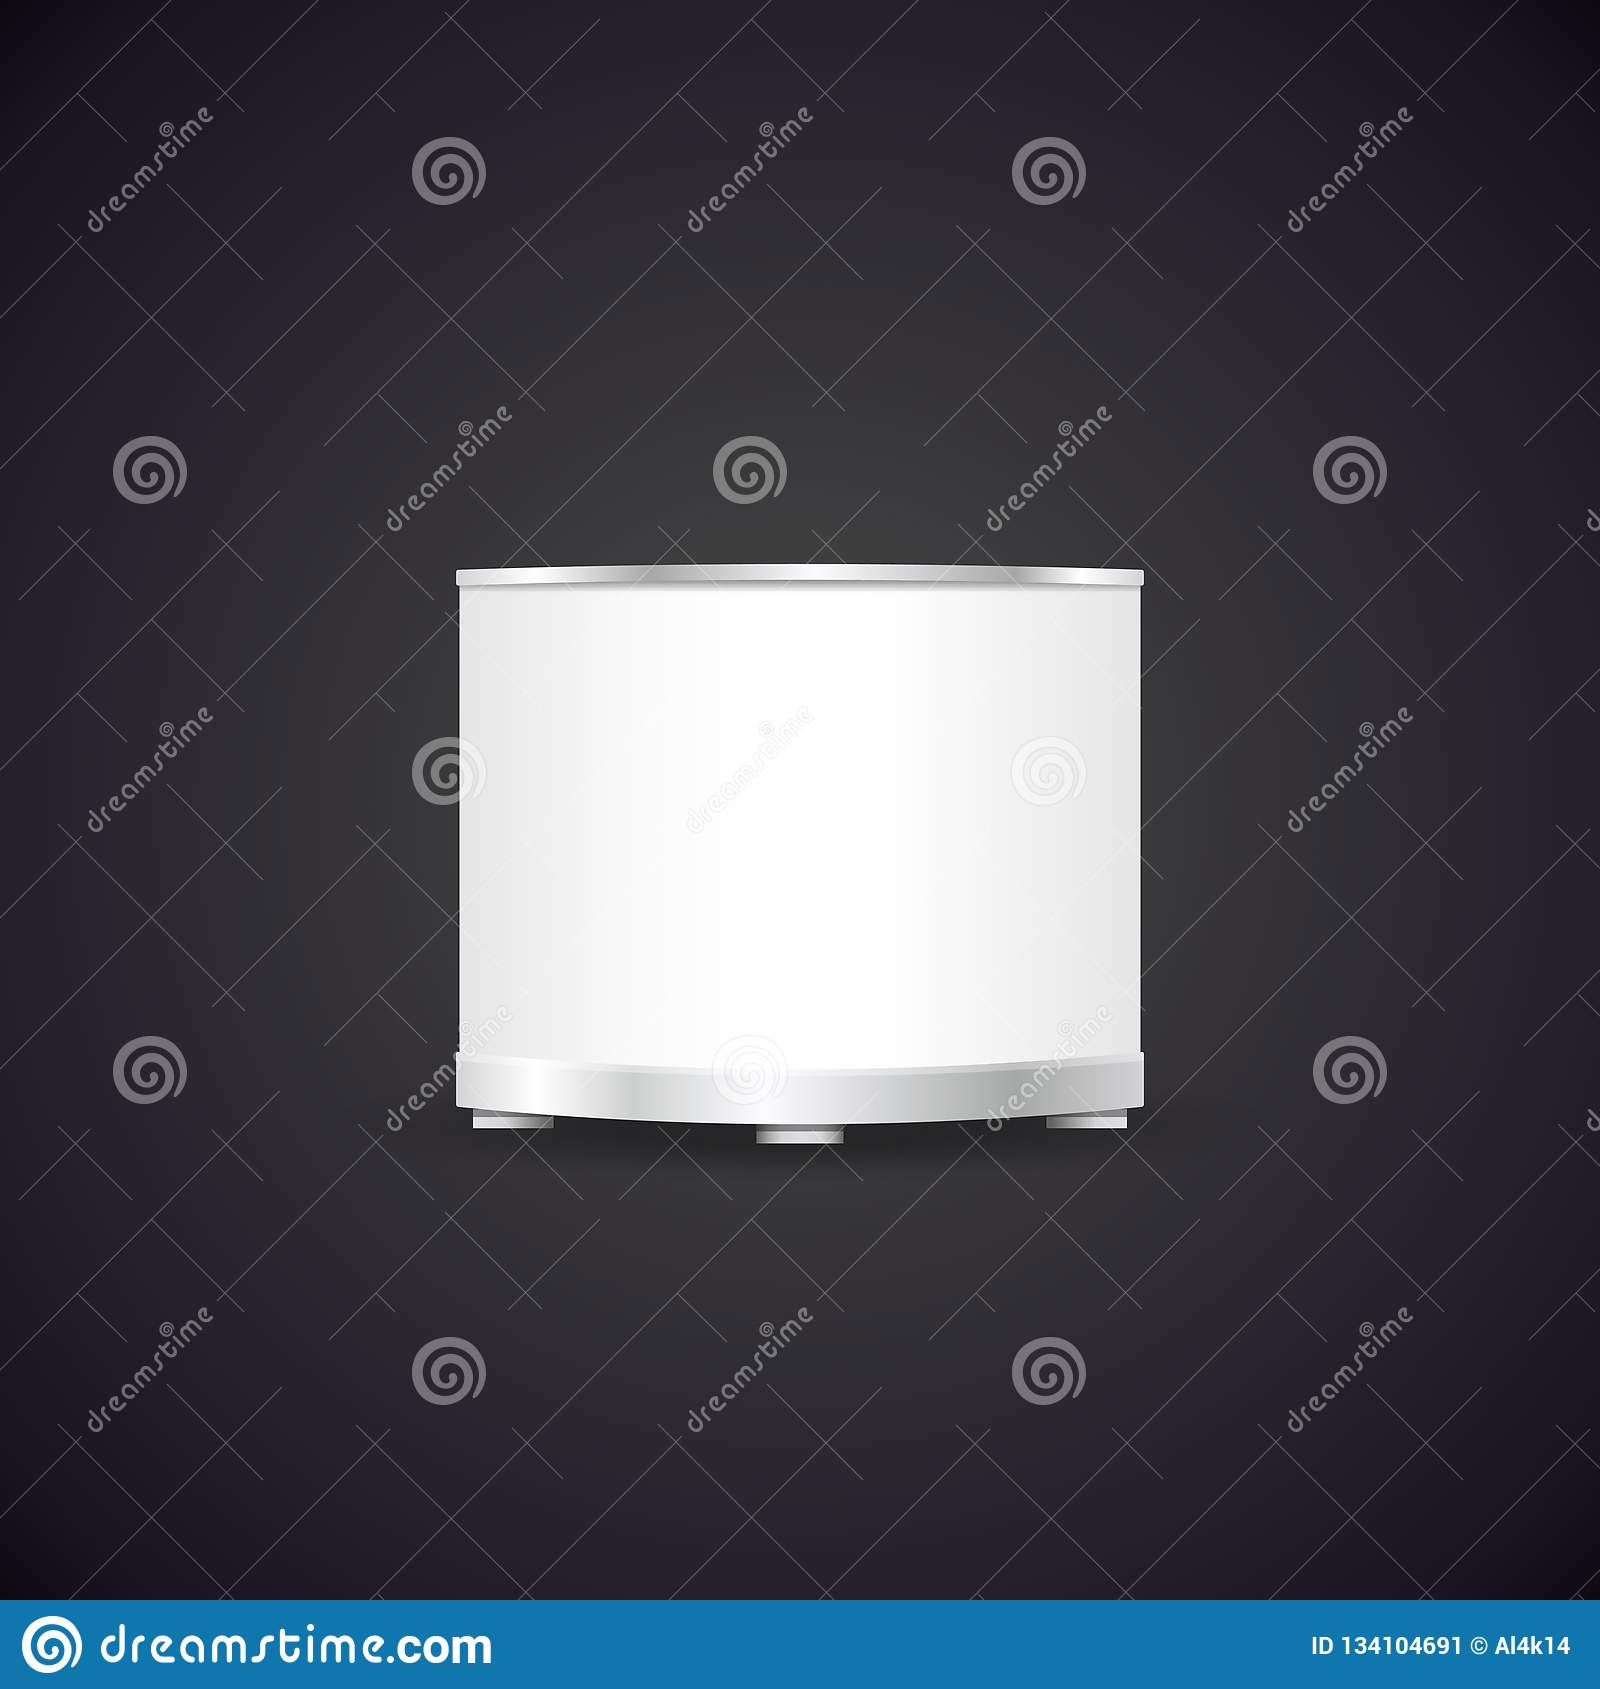 Exhibition Booth Mockup : Vector exhibition stand booth mockup stock vector illustration